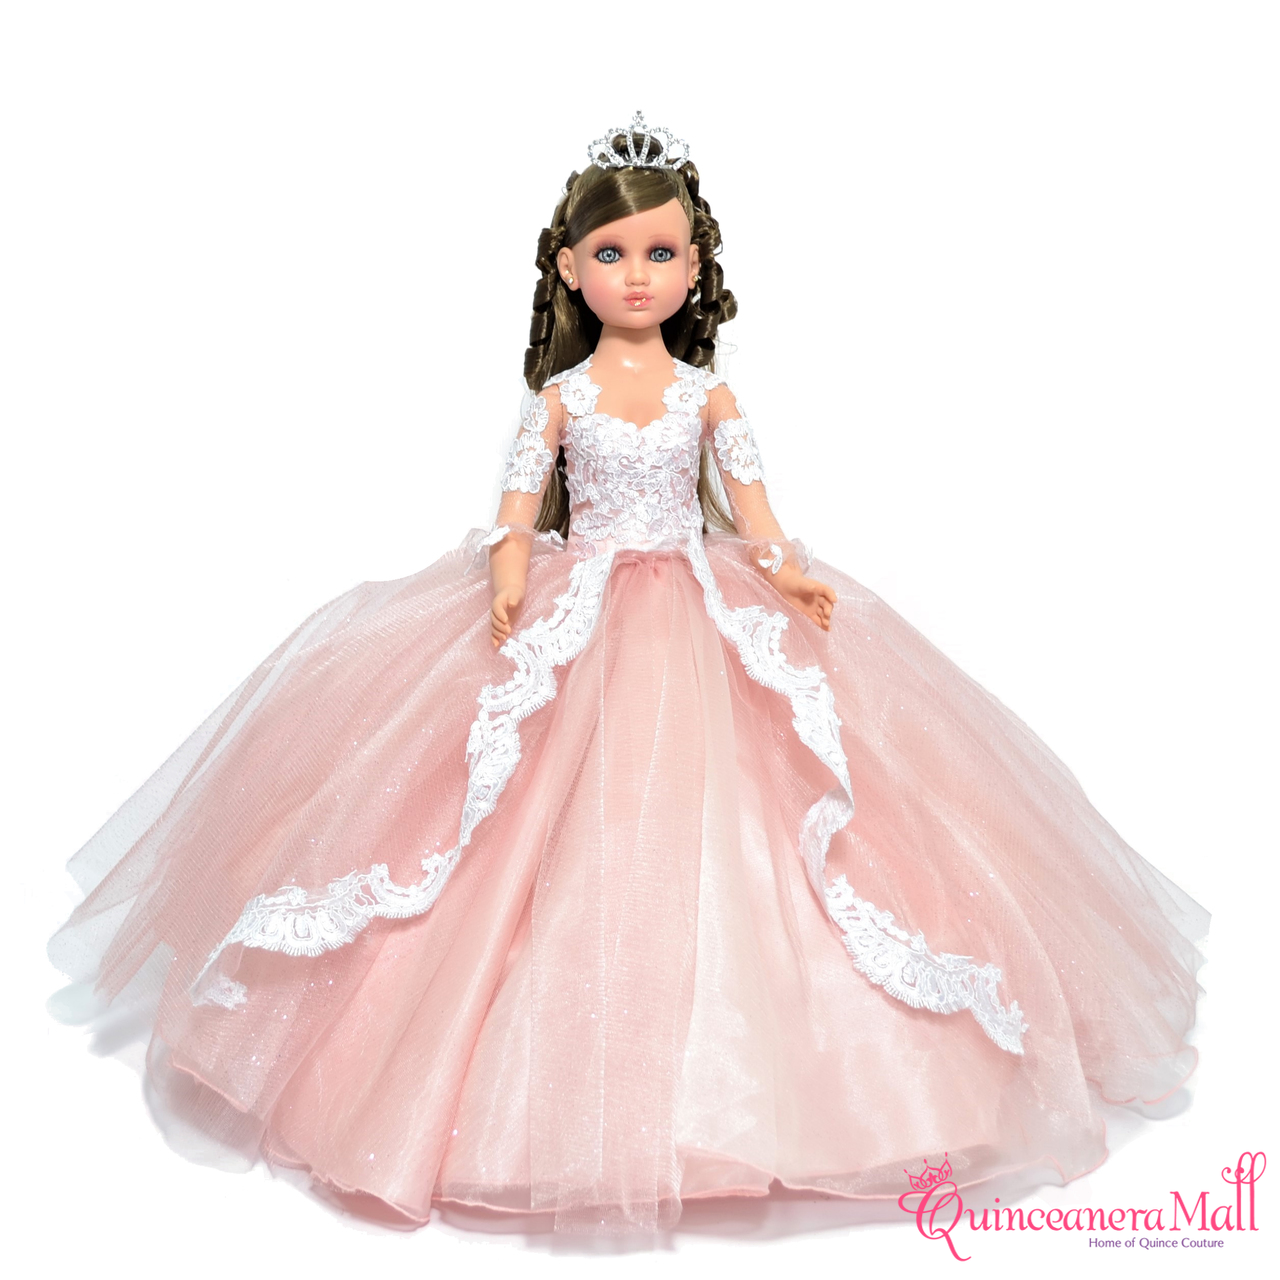 2391b3fd378 Last quinceanera dolls or ultima muneca for your sweet fifteen or ...